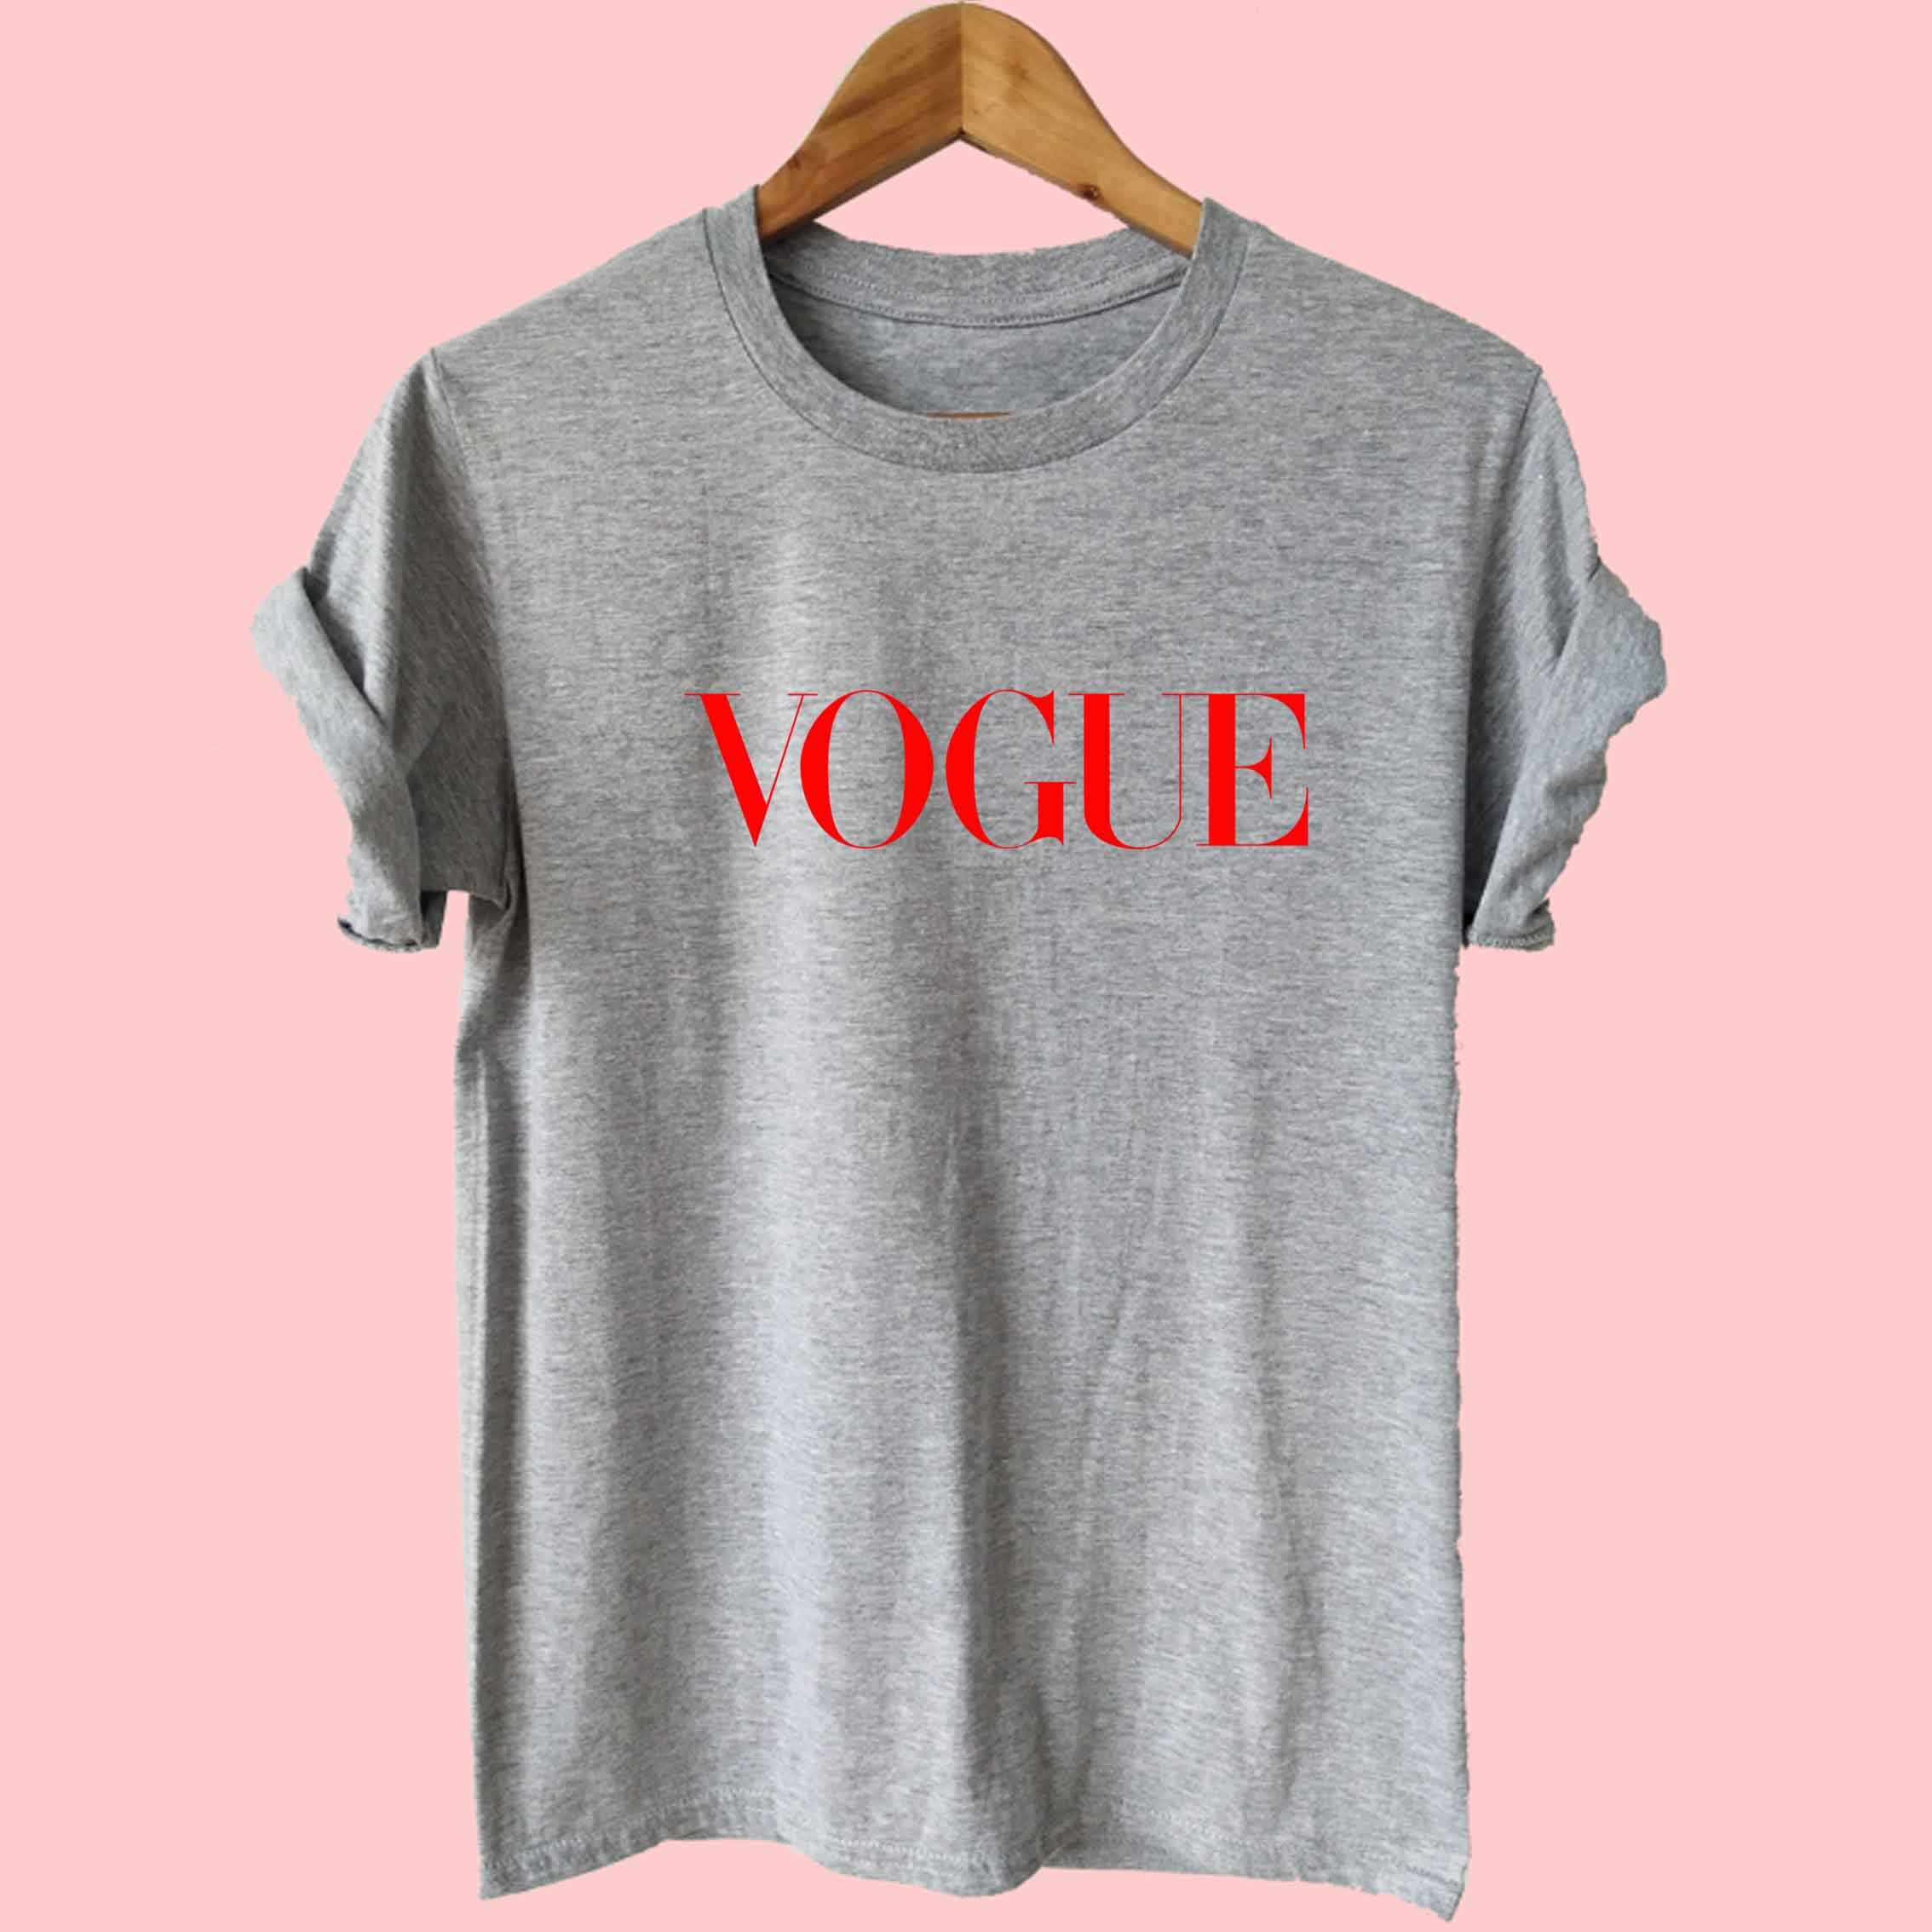 7735c33d1a276 Harajuku Summer T Shirt Women New Arrivals Fashion RED VOGUE letters  Printed T-shirt Woman Tee Tops Casual Female T-shirts